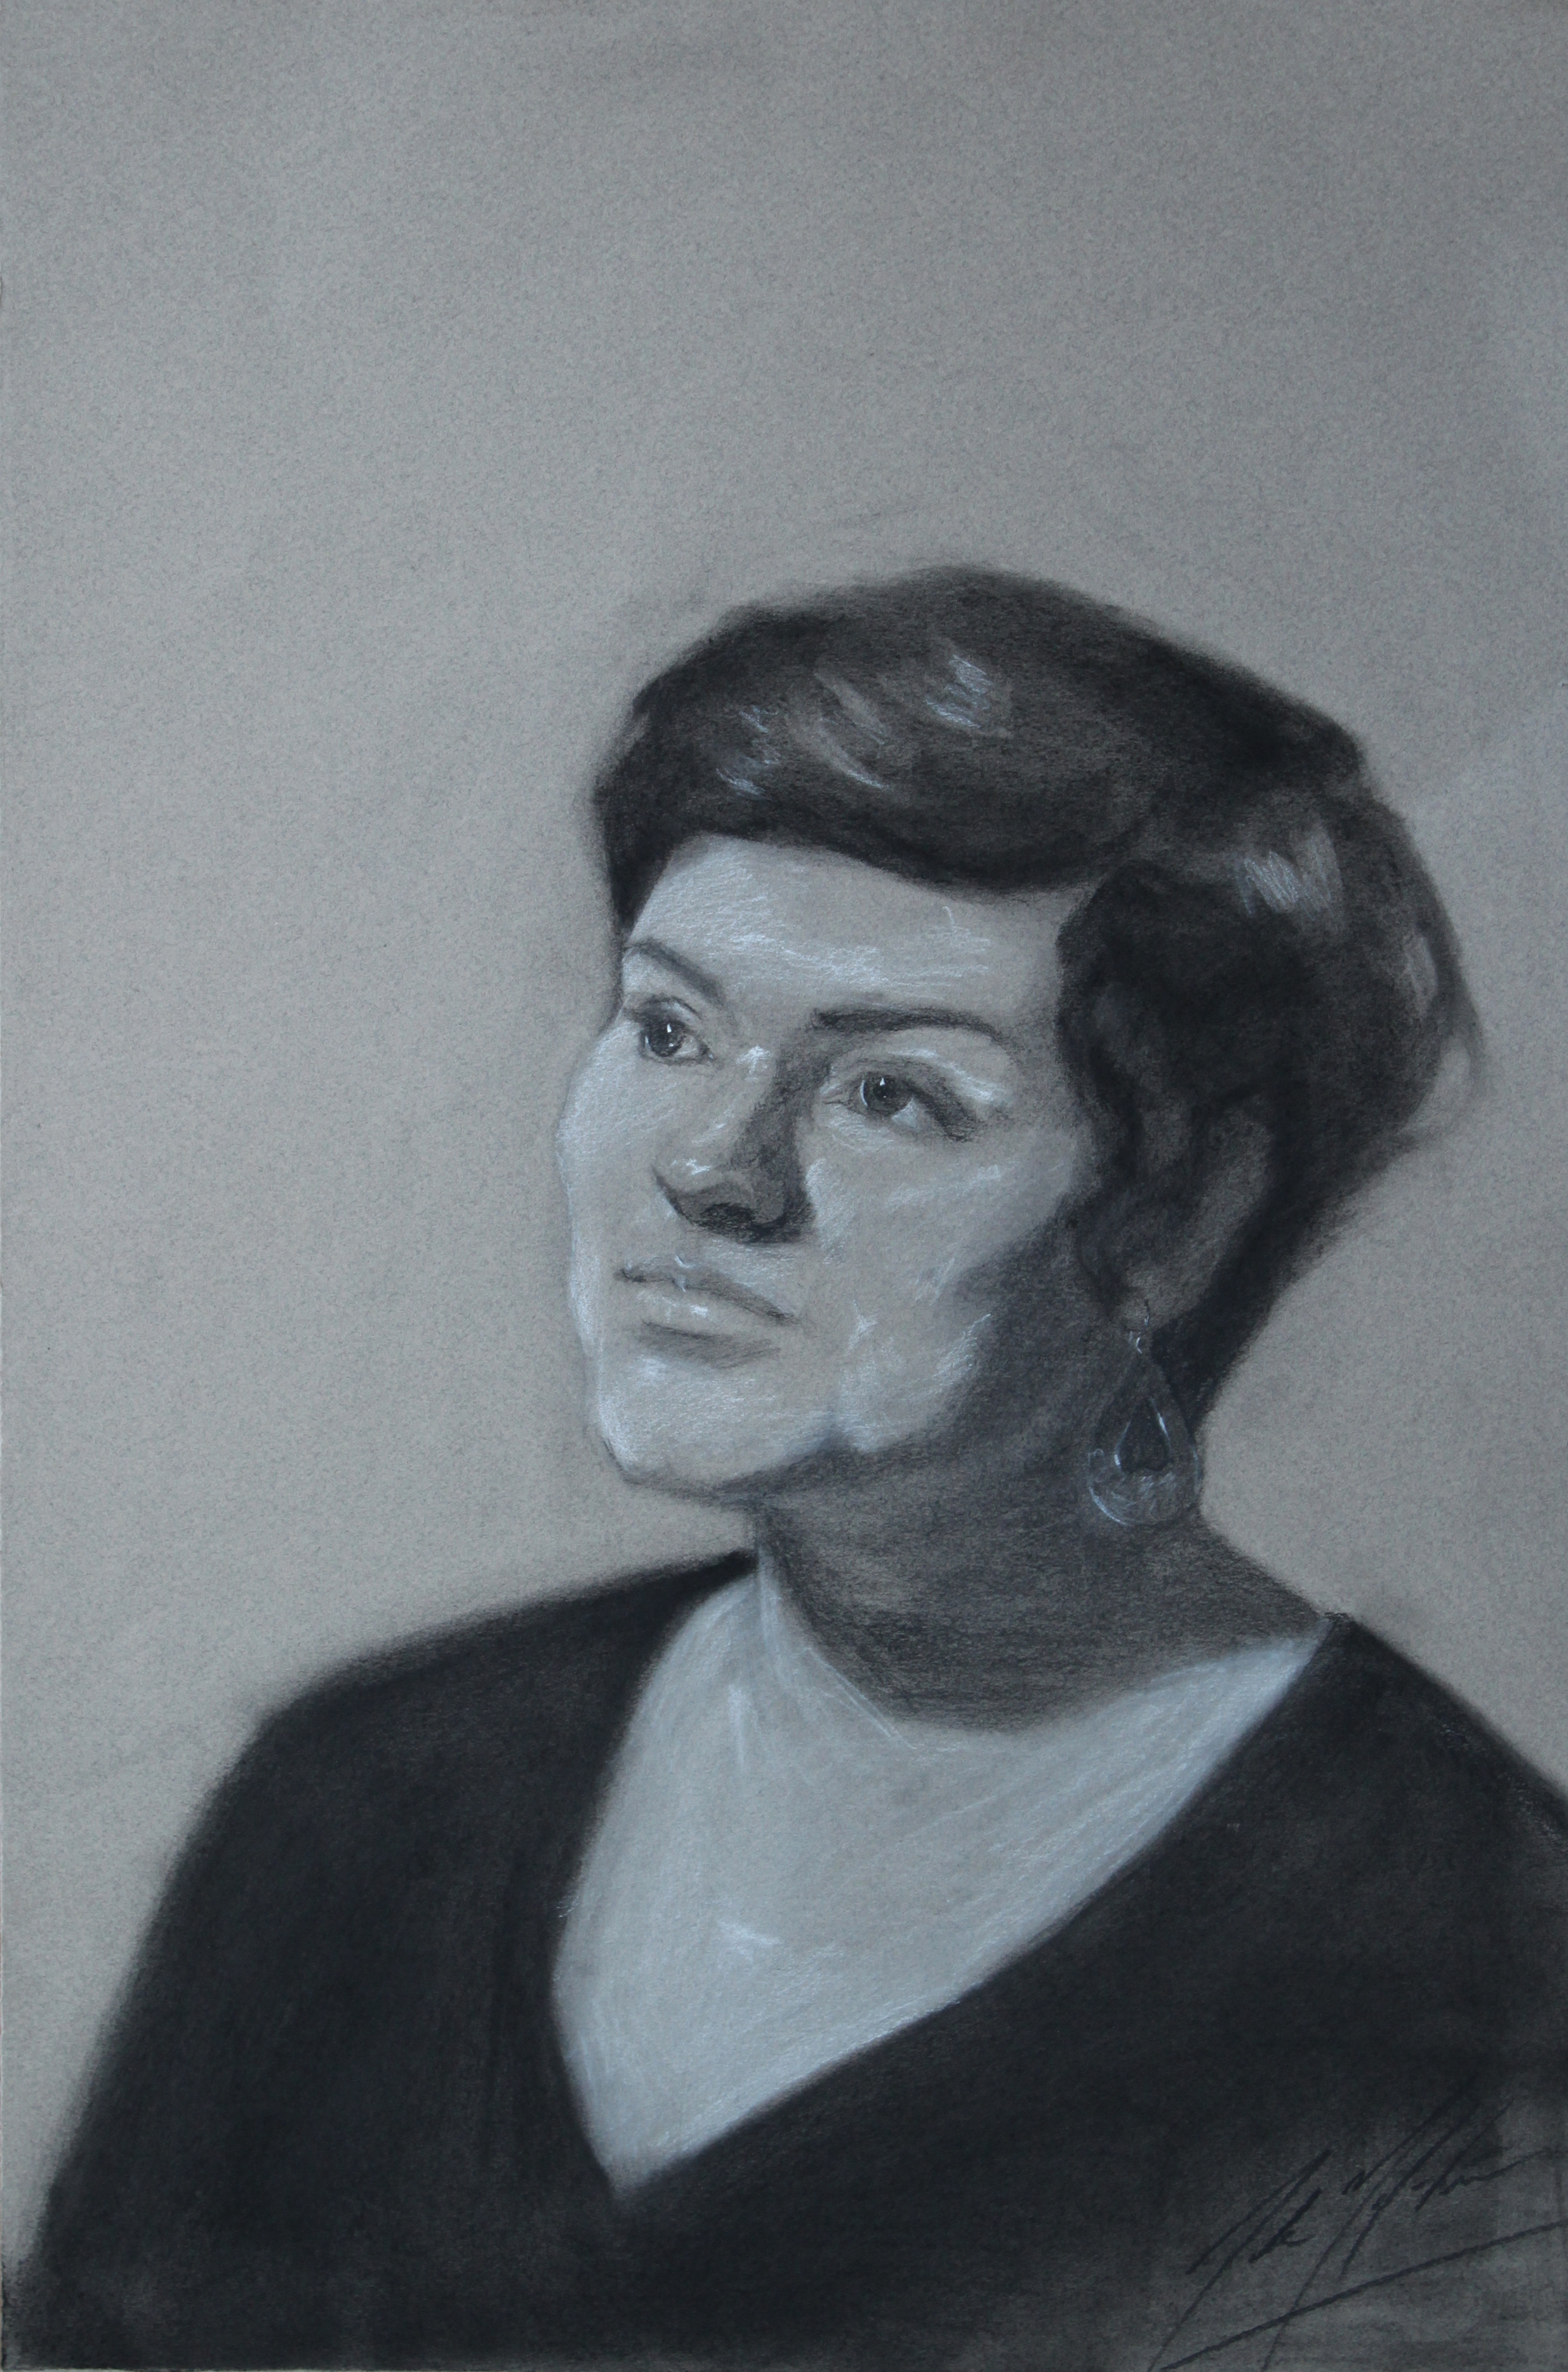 Alexandra, 2014, charcoal on paper, 18 x 12 inches